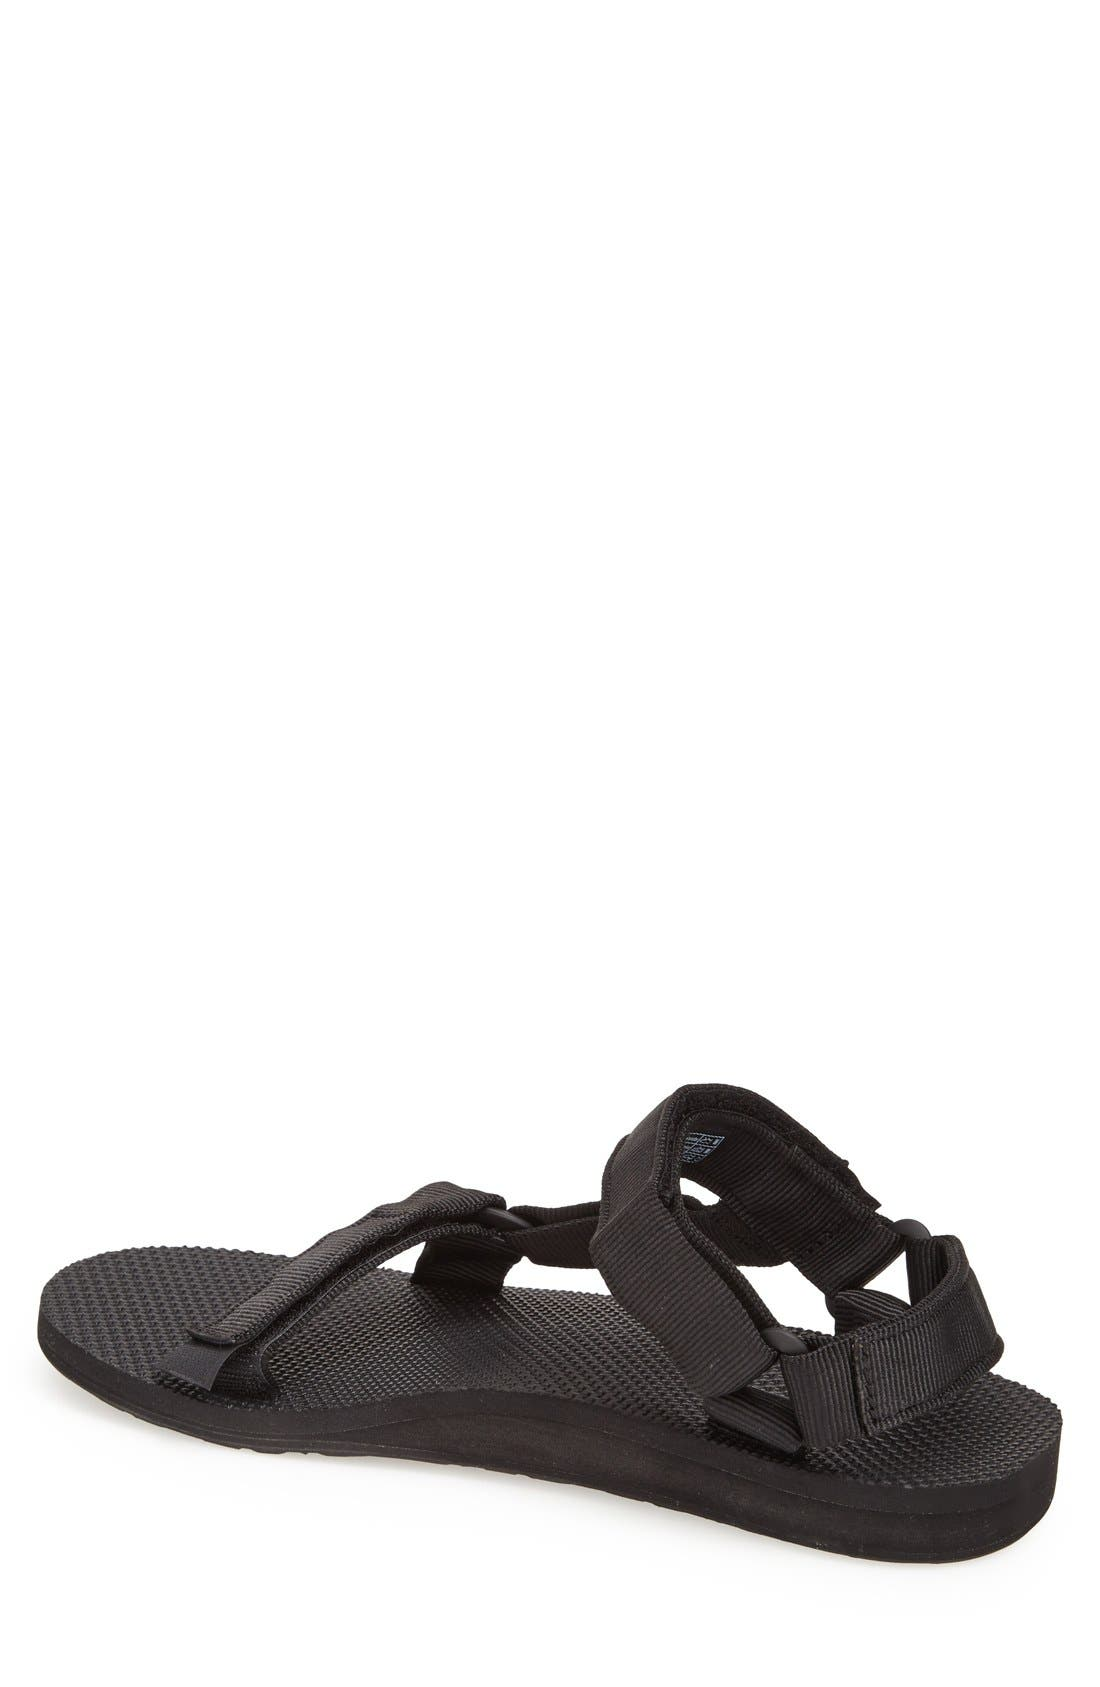 Alternate Image 2  - Teva 'Original Universal Urban' Sandal (Men)